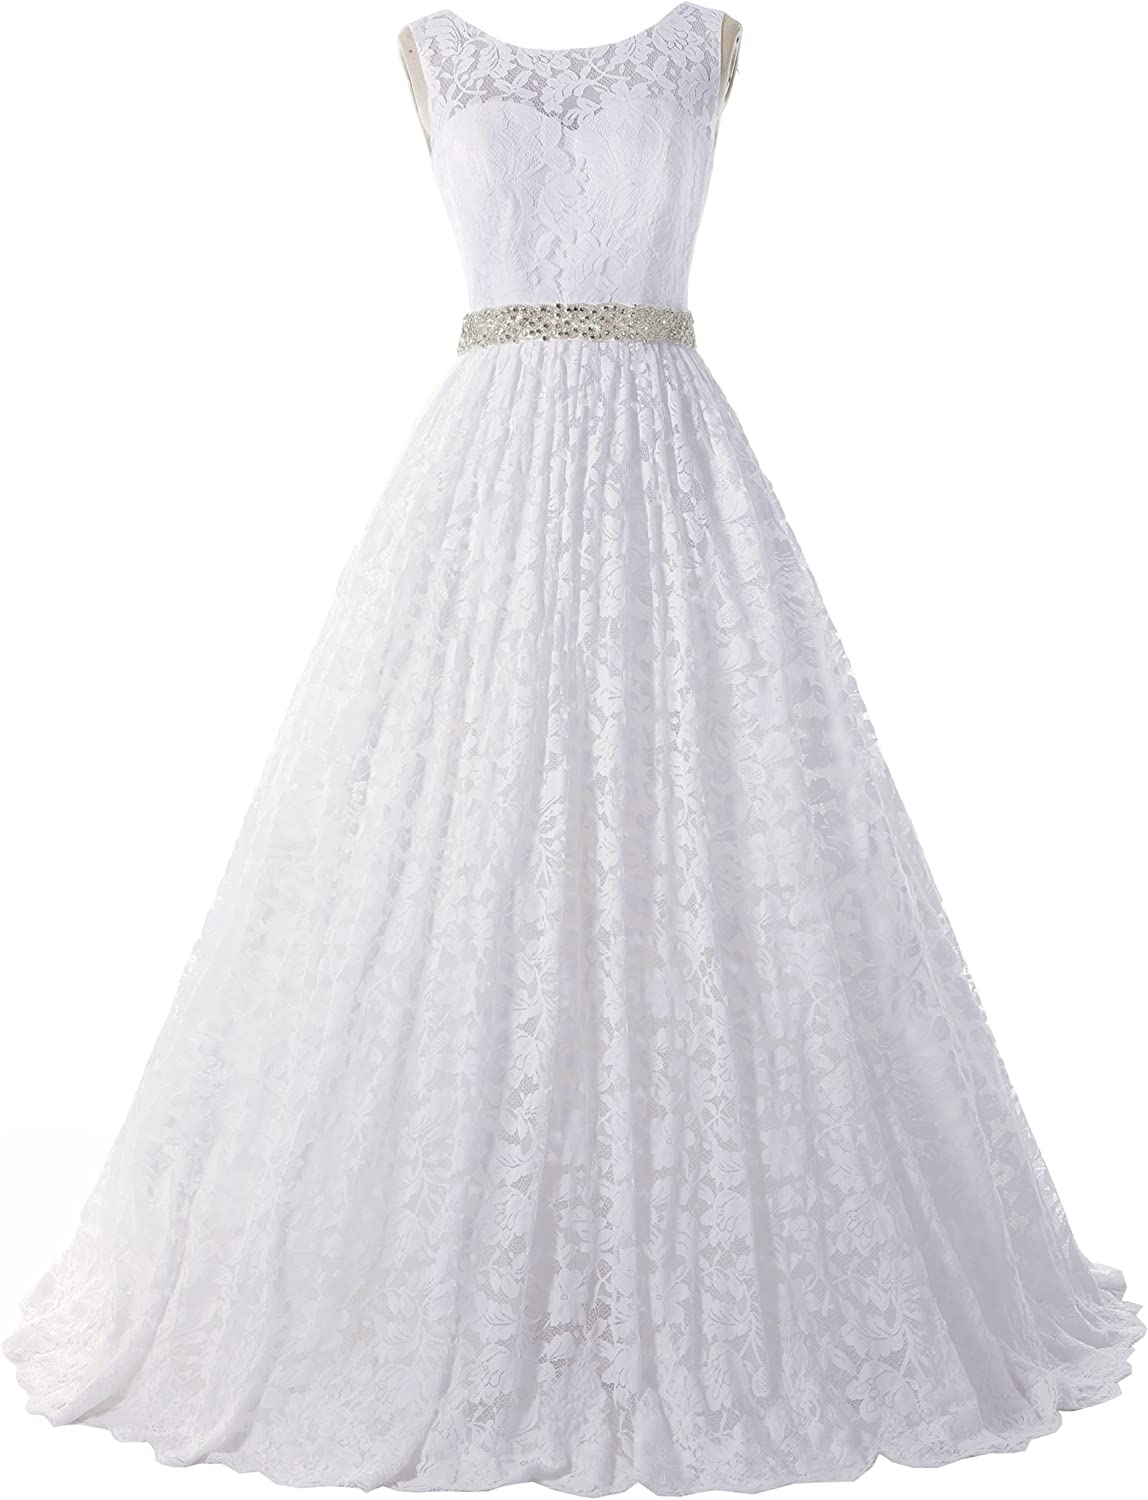 SOLOVEDRESS Women's Ball Gown Lace Princess Wedding Dress Sash Beaded Bridal Evening Gown